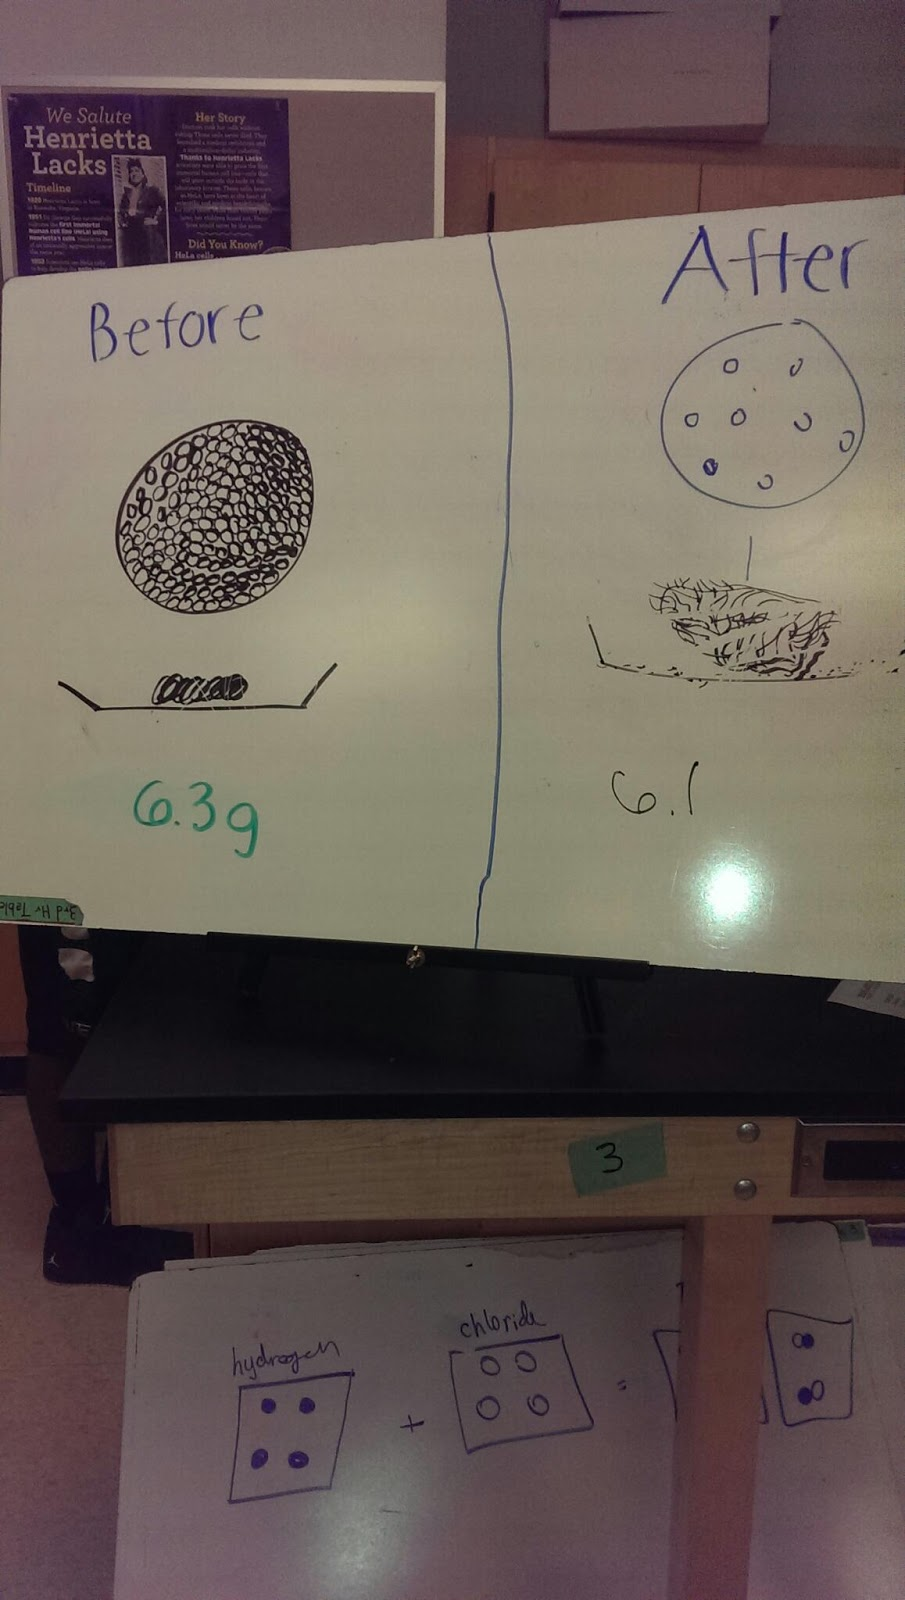 medium resolution of whiteboard of the particles of the steel wool and pulled apart steel wool